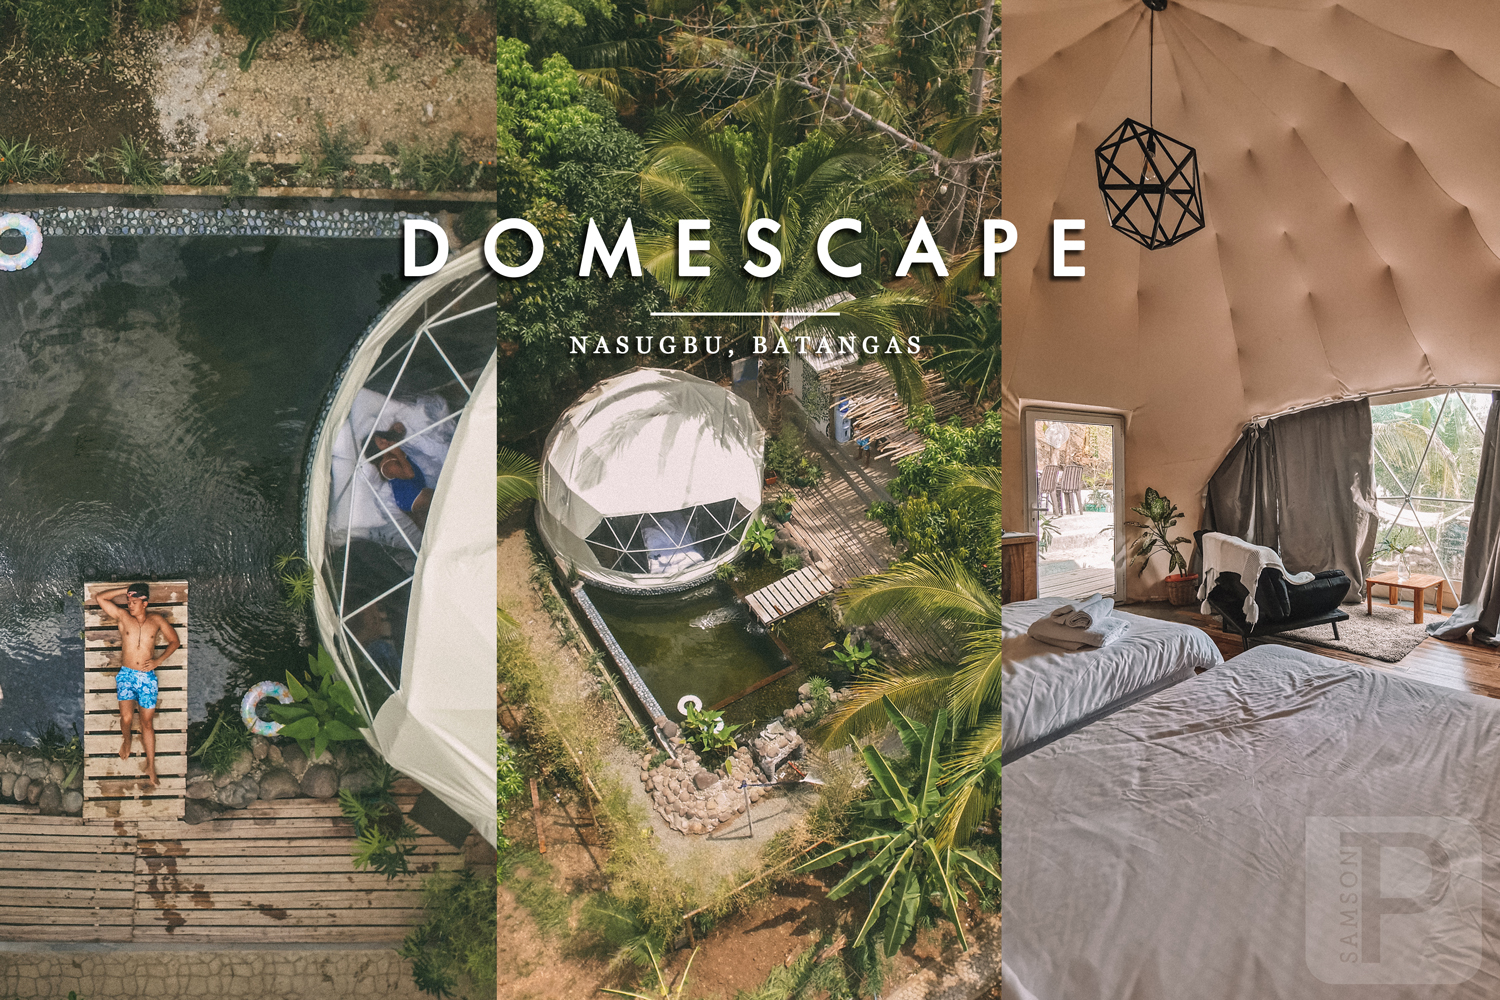 Here's a Sneak Peek of Domescape: The First Dome Glamping Site in the Philippines!